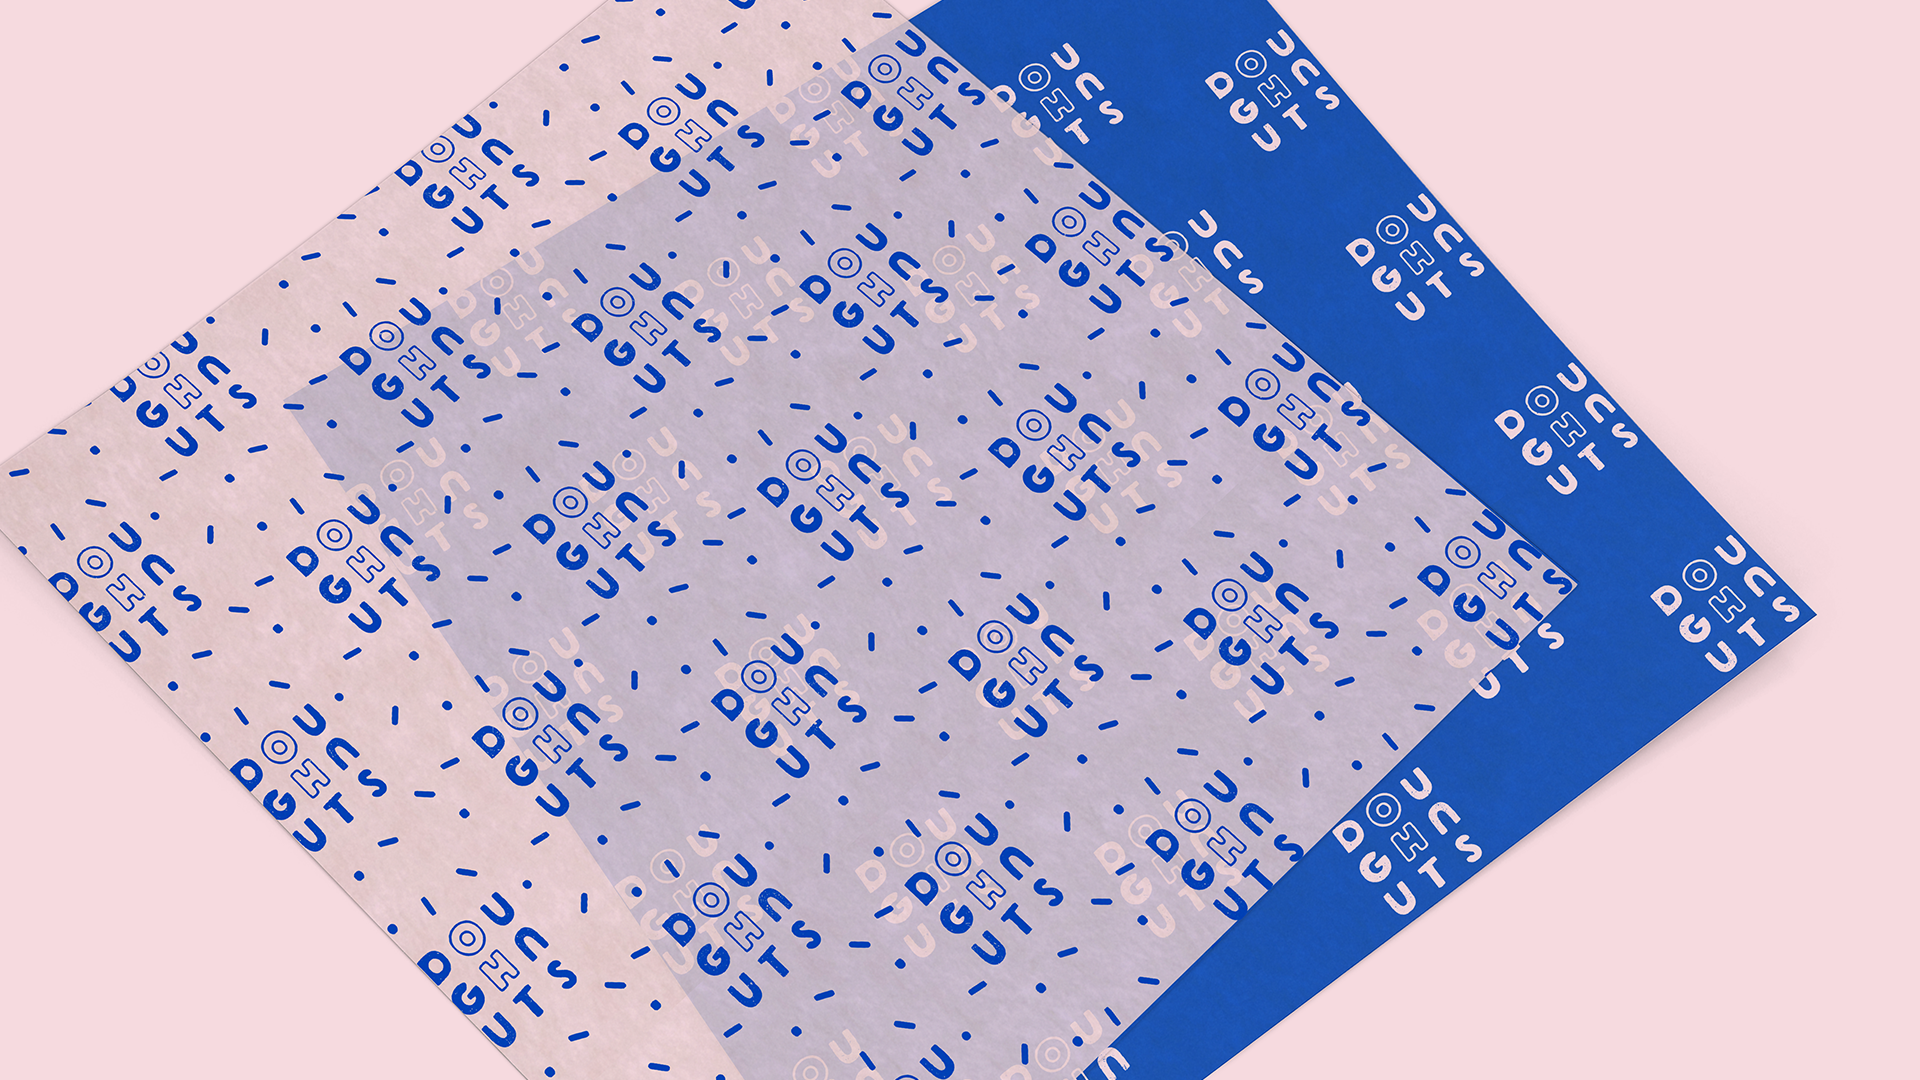 A mockup of bakery wax paper squares with a pattern, featuring the modular Oh Doughnuts logo and sprinkles.